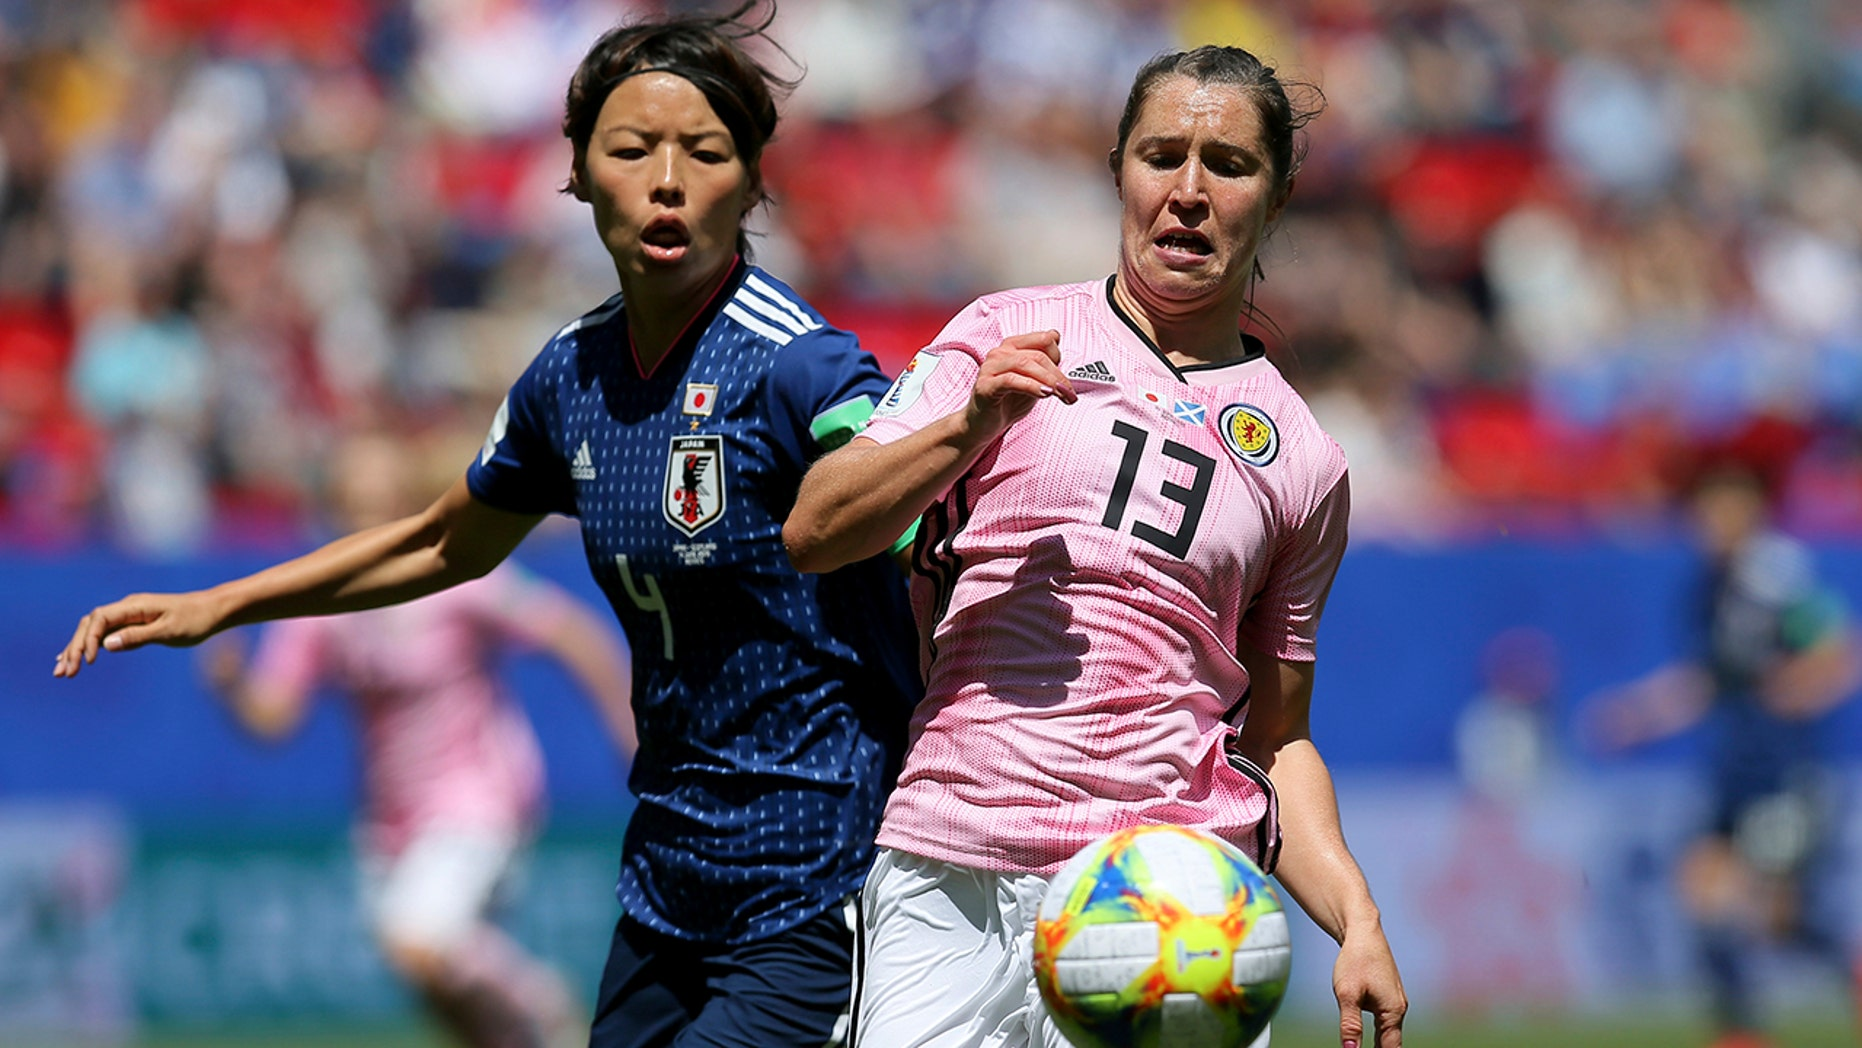 Scotland's Jane Ross, right, is challenged by Japan's Saki Kumagai during the Women's World Cup Group D soccer match between Japan and Scotland at the Roazhon Park in Rennes, France, Friday, June 14, 2019. (AP Photo/David Vincent)